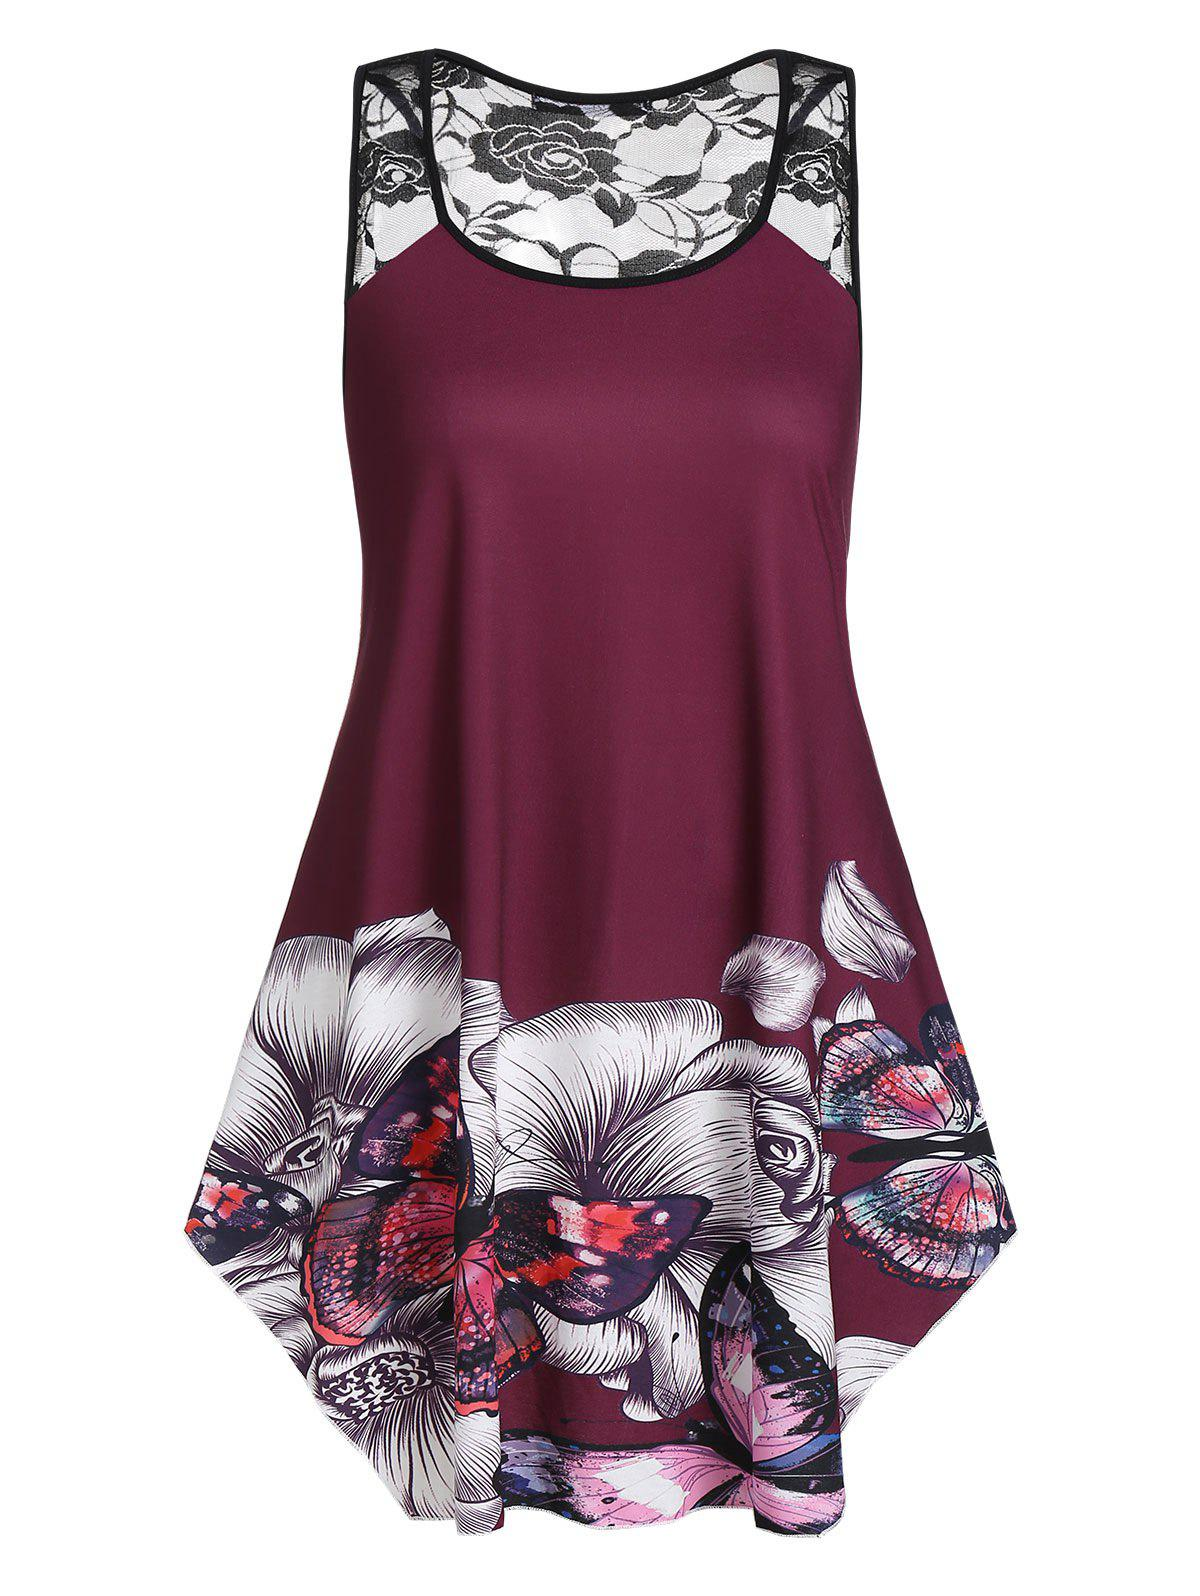 dfd0bd26bc1 34% OFF] Plus Size Floral Butterfly Print Swing Tank Top | Rosegal